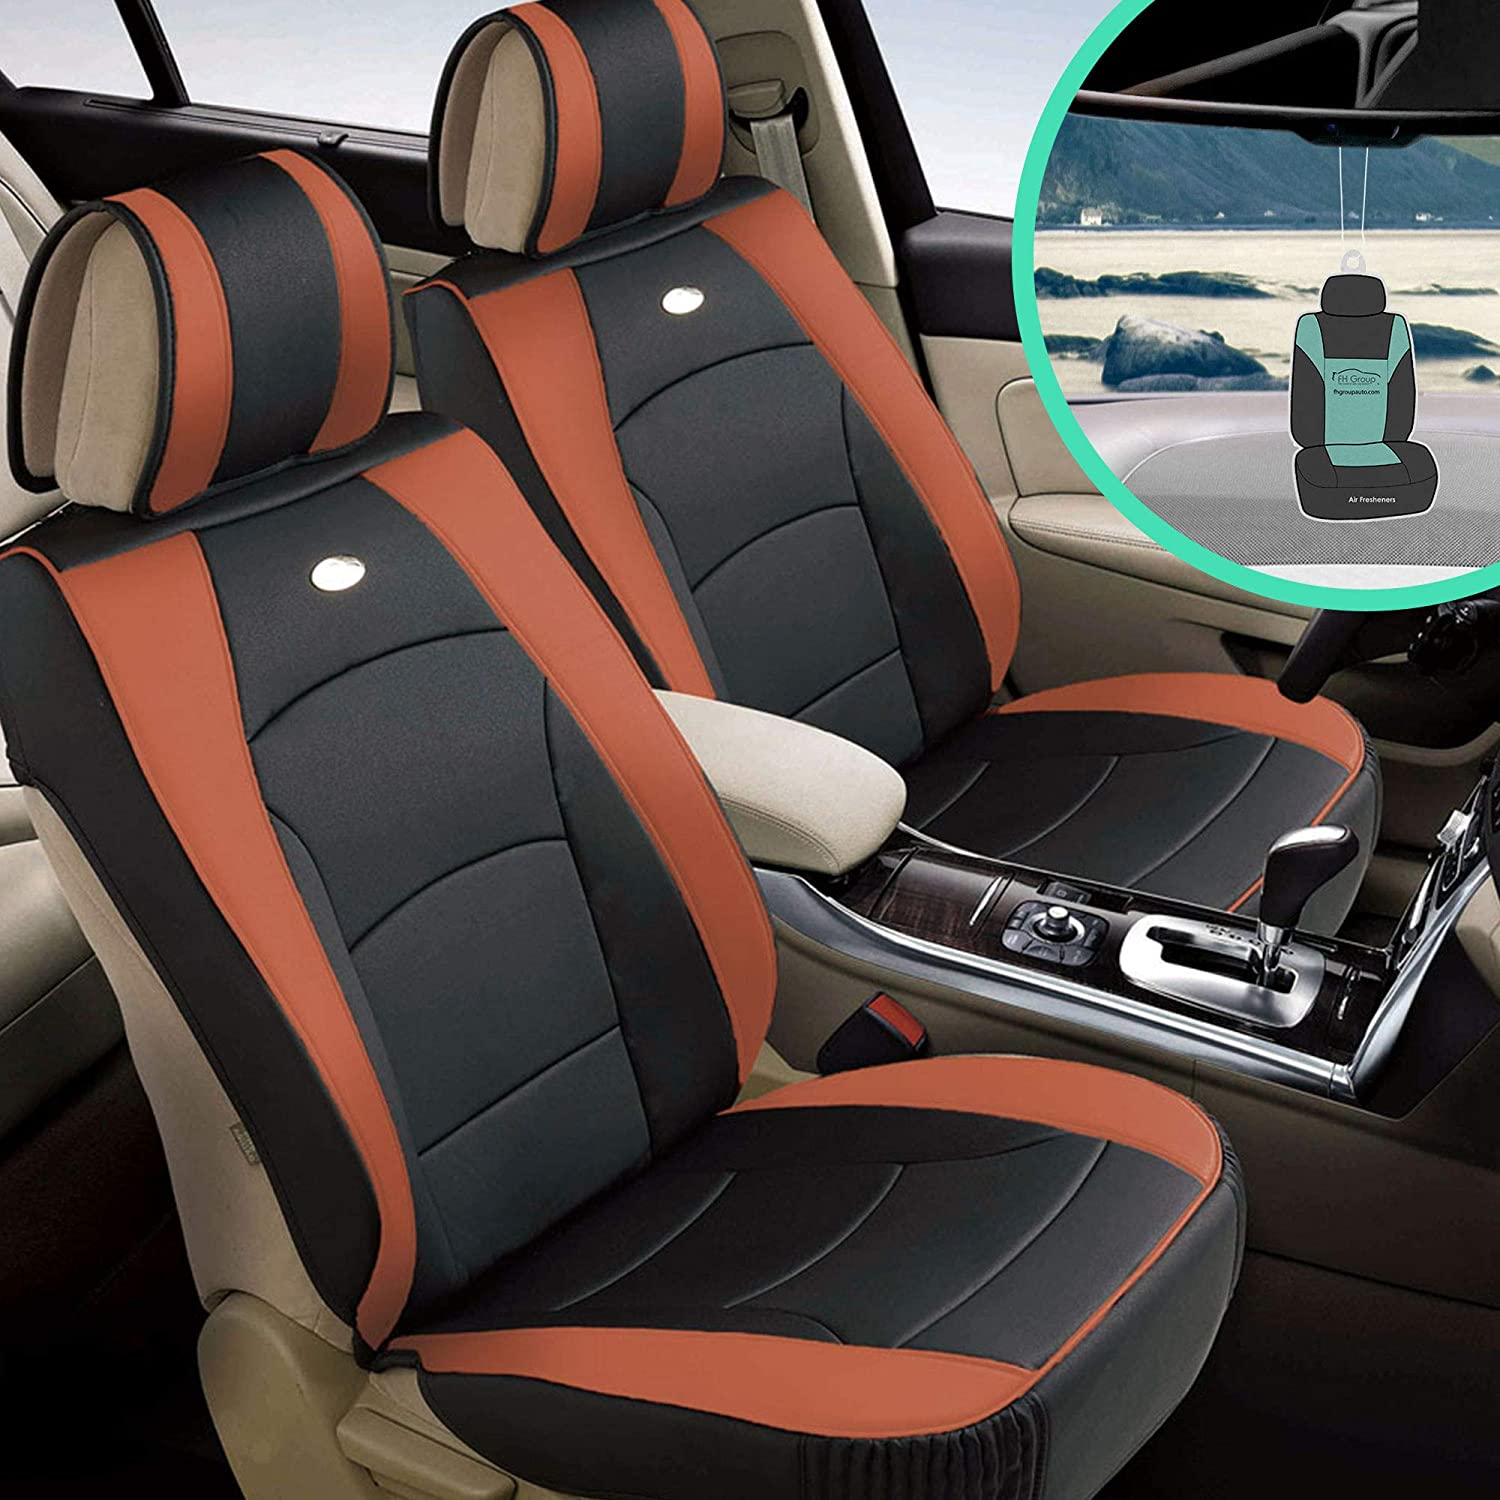 2 Black//Tan PU Leather Front Car Seat Covers Cushion for Ford #80204